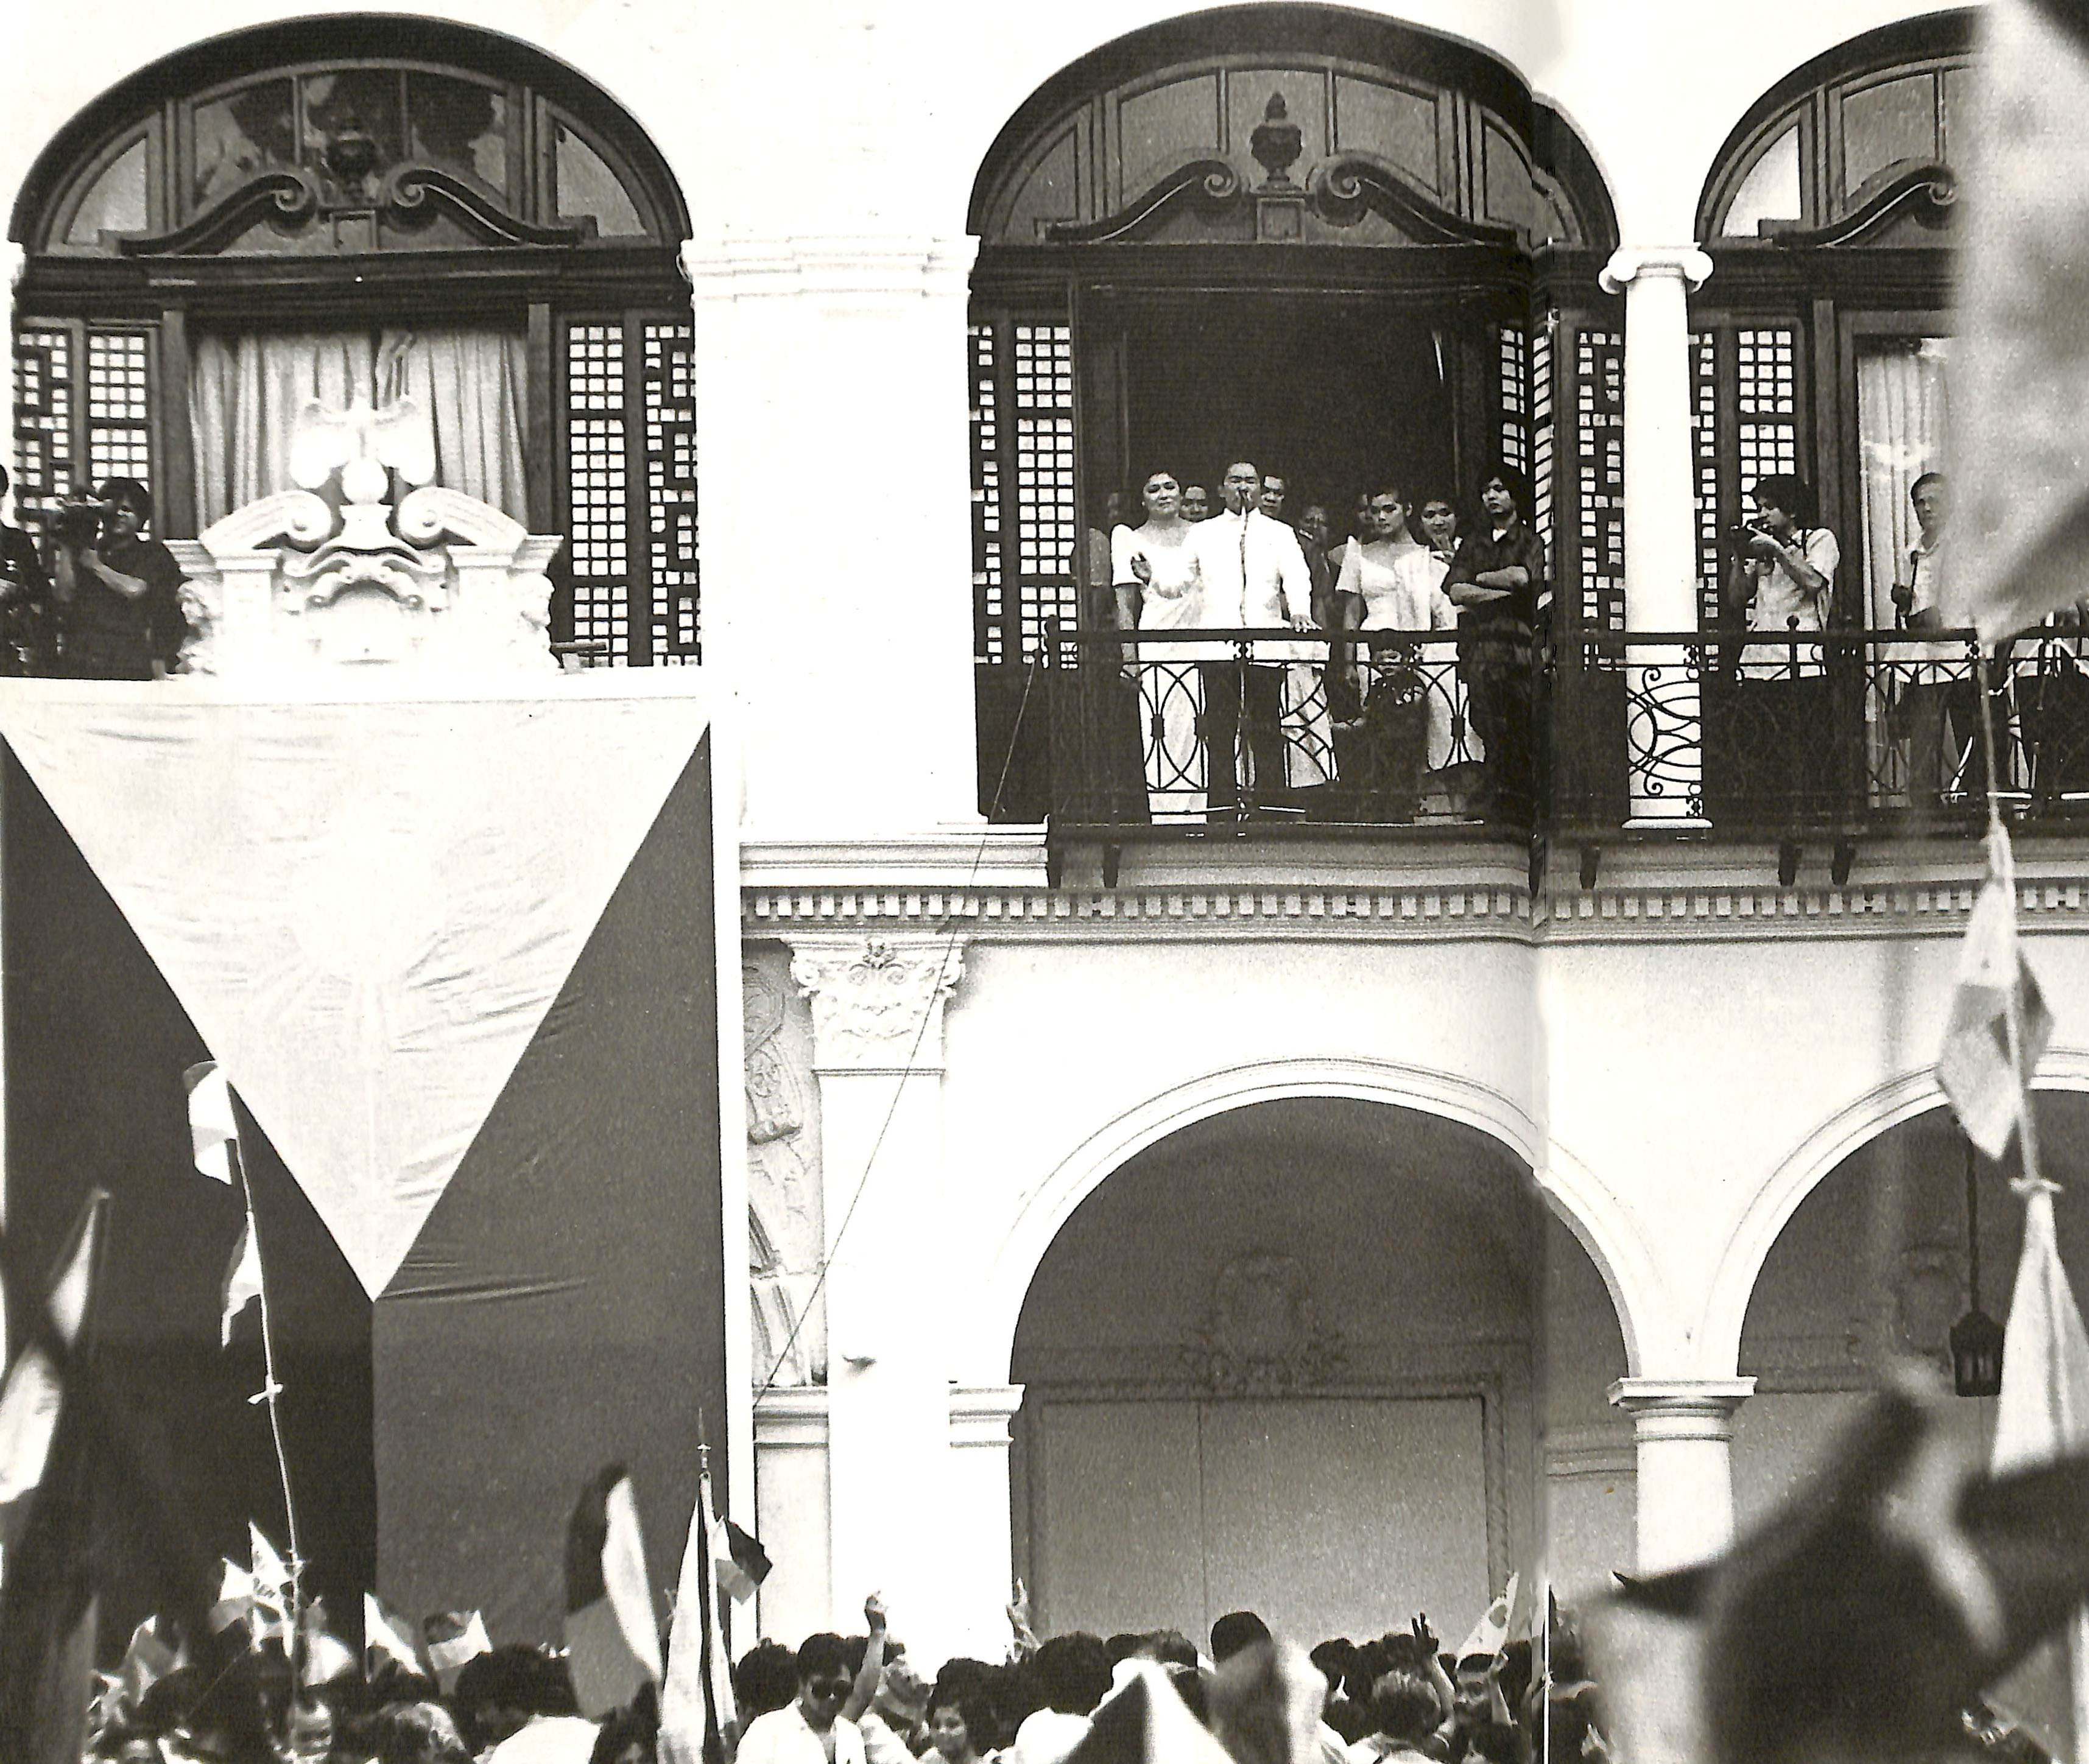 FINAL OATH. The Marcos family moments after taking his oath of office in ceremonies at Malacau00f1ang Palace on Feb. 25, 1986. Photo from the Presidential Museum and Library